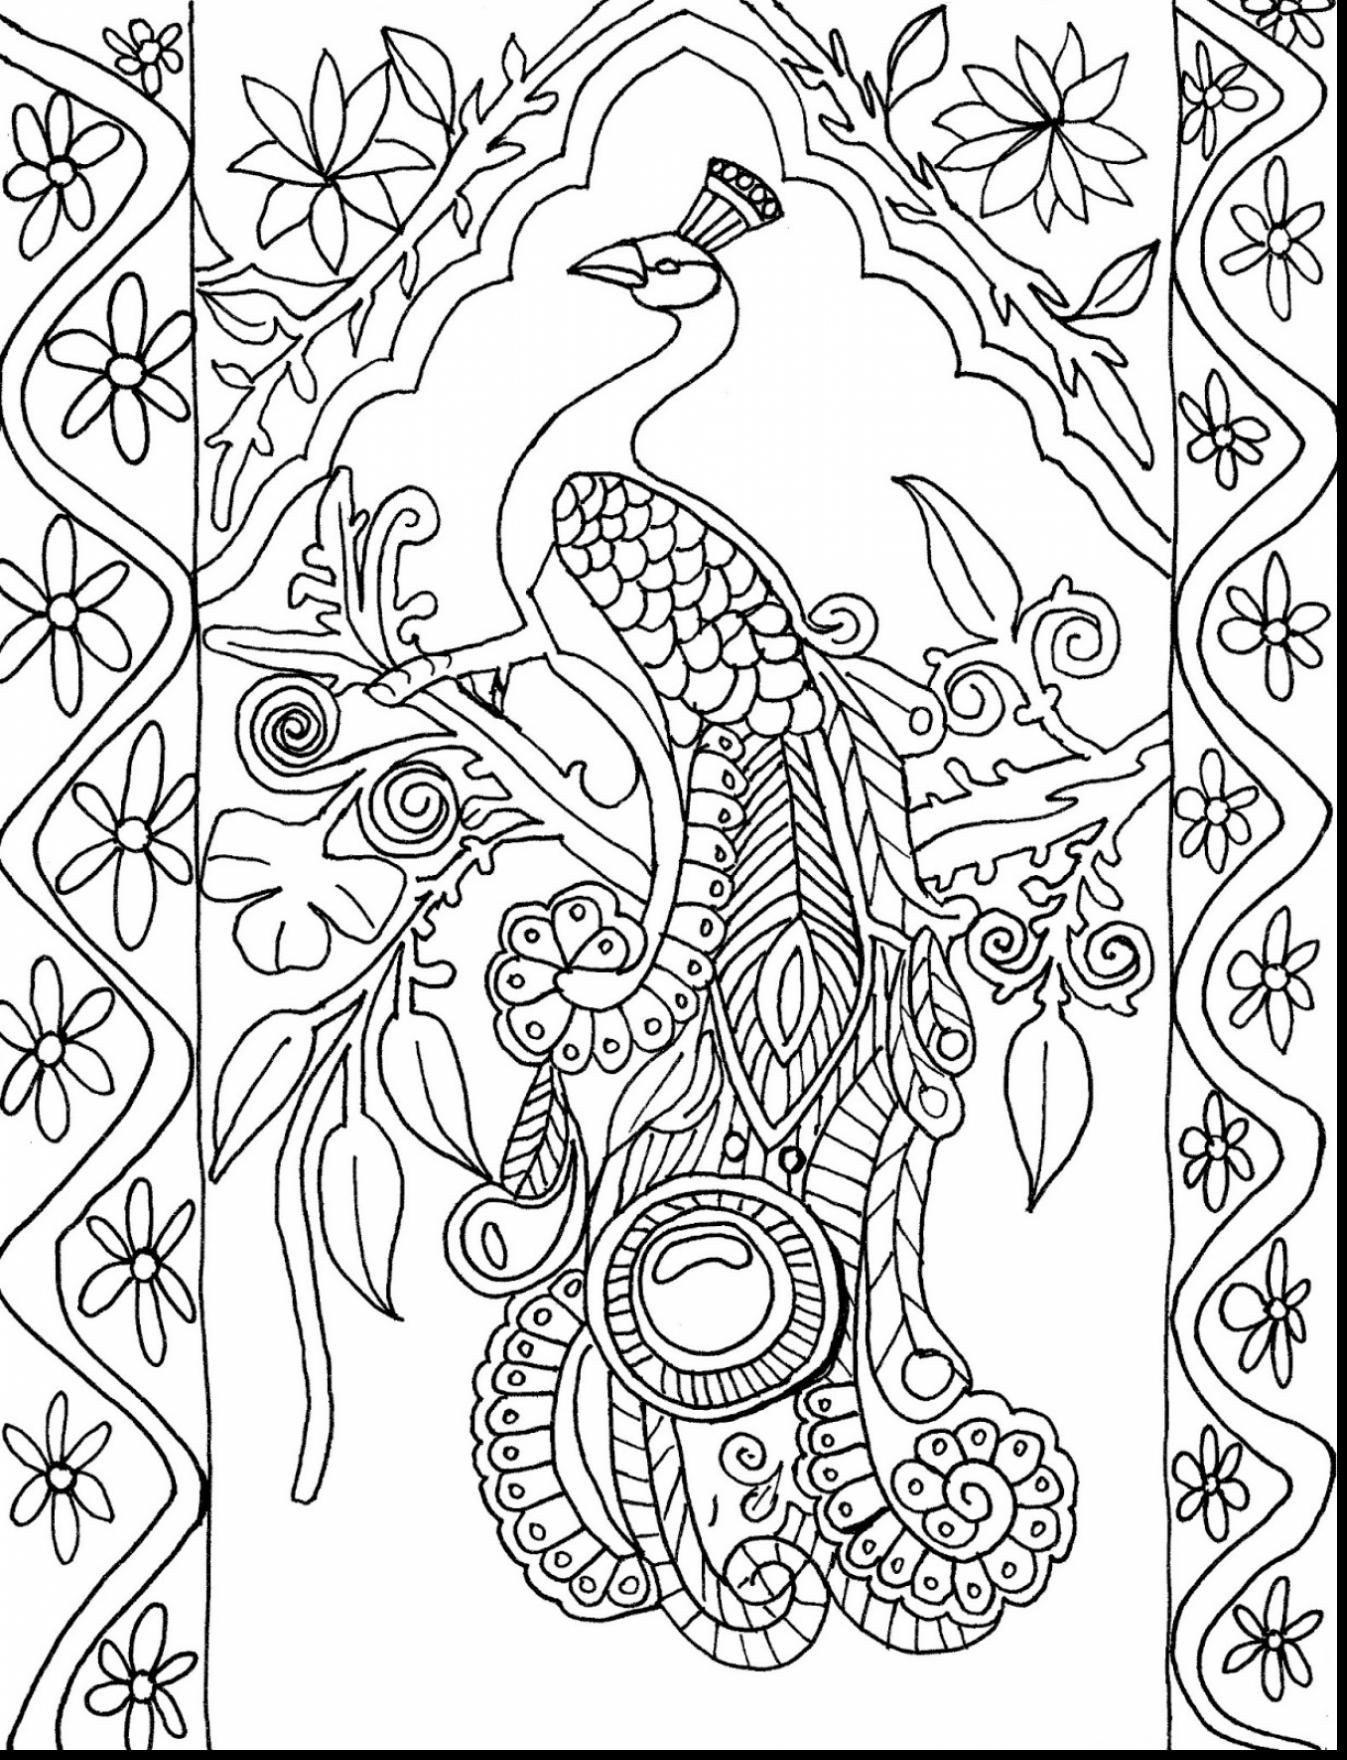 Coloring pages of peacocks - Magnificent Peacock Adult Coloring Pages Printable With Adult Coloring Pages Free Printable And Adult Coloring Pages